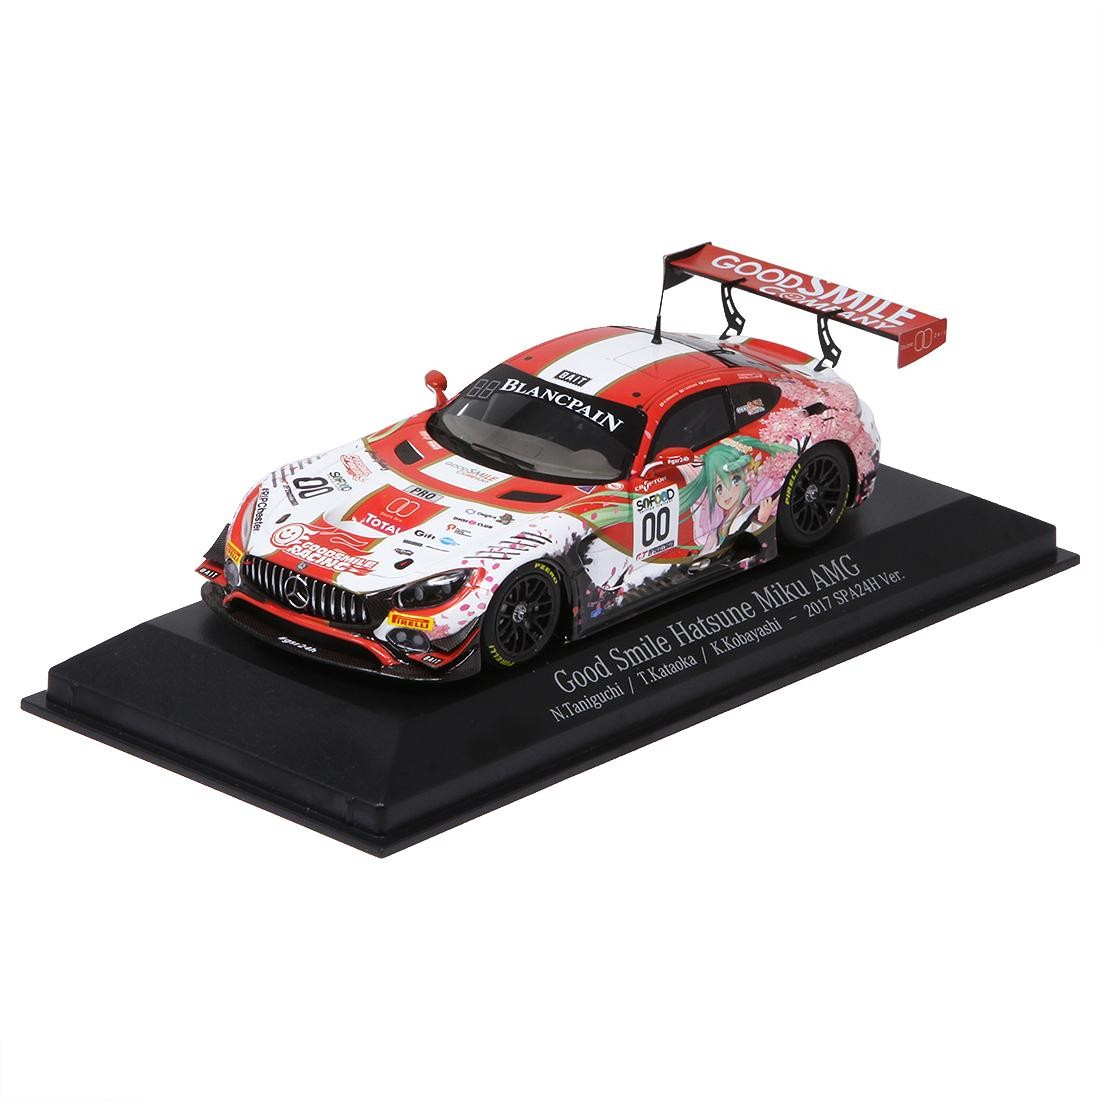 Good Smile Racing Hatsune Miku GT Project AMG 2017 Spa 24 Hours Version 1/43 Scale (red)